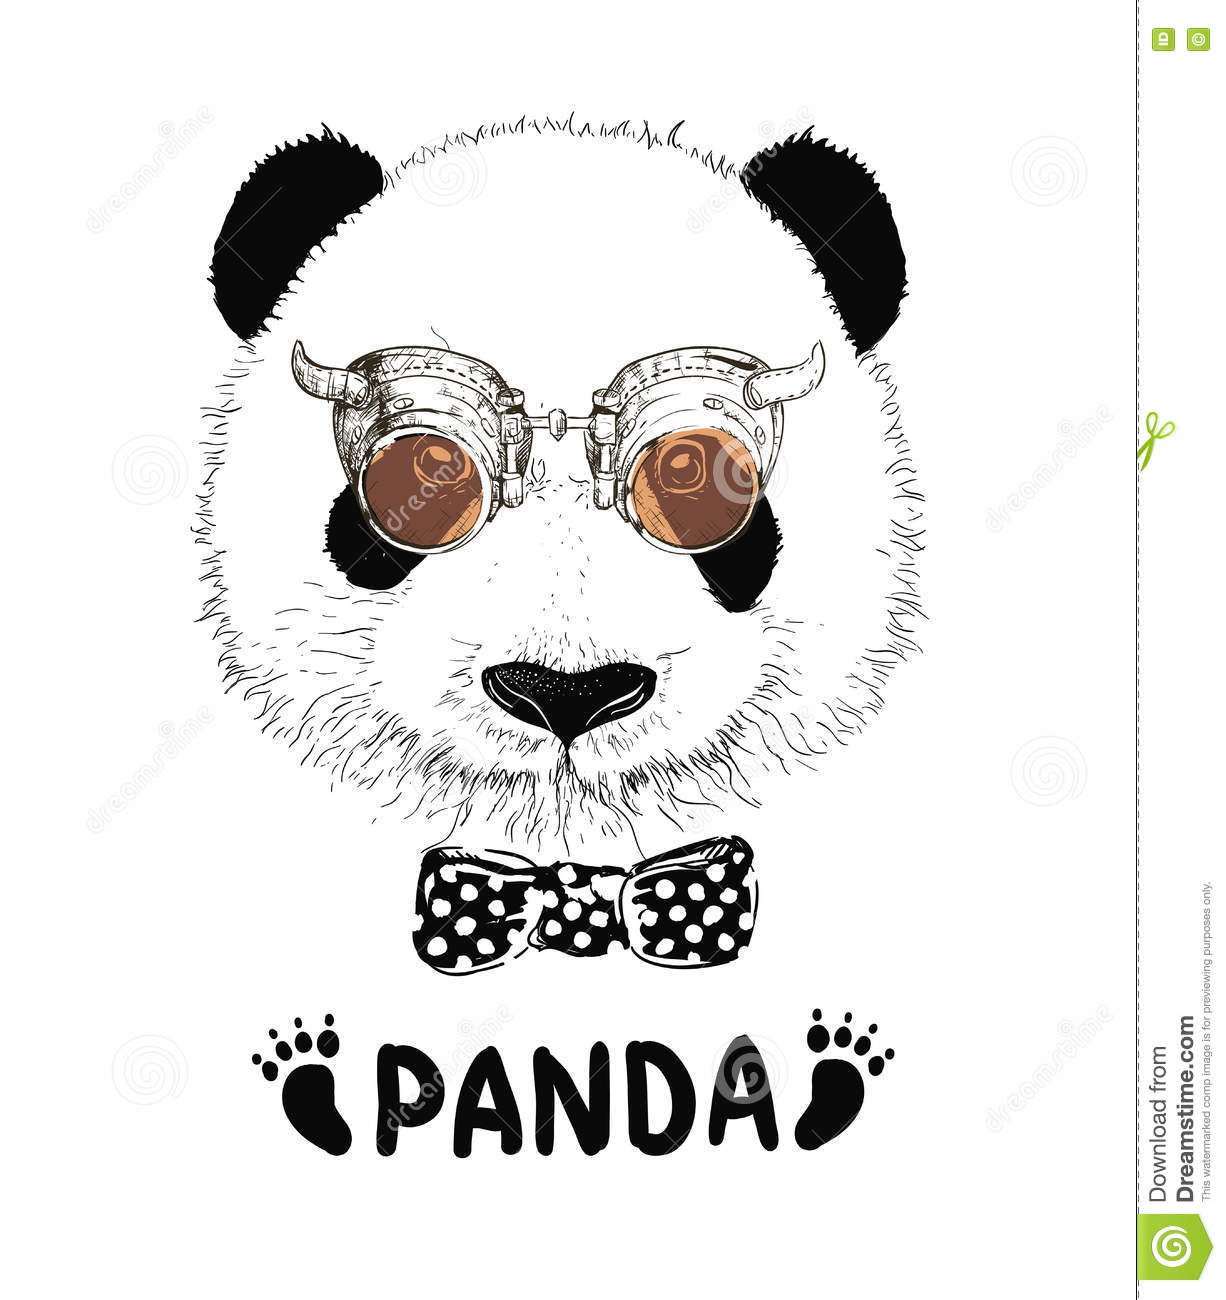 Funny Panda Face Pictures to Pin on Pinterest - PinsDaddy